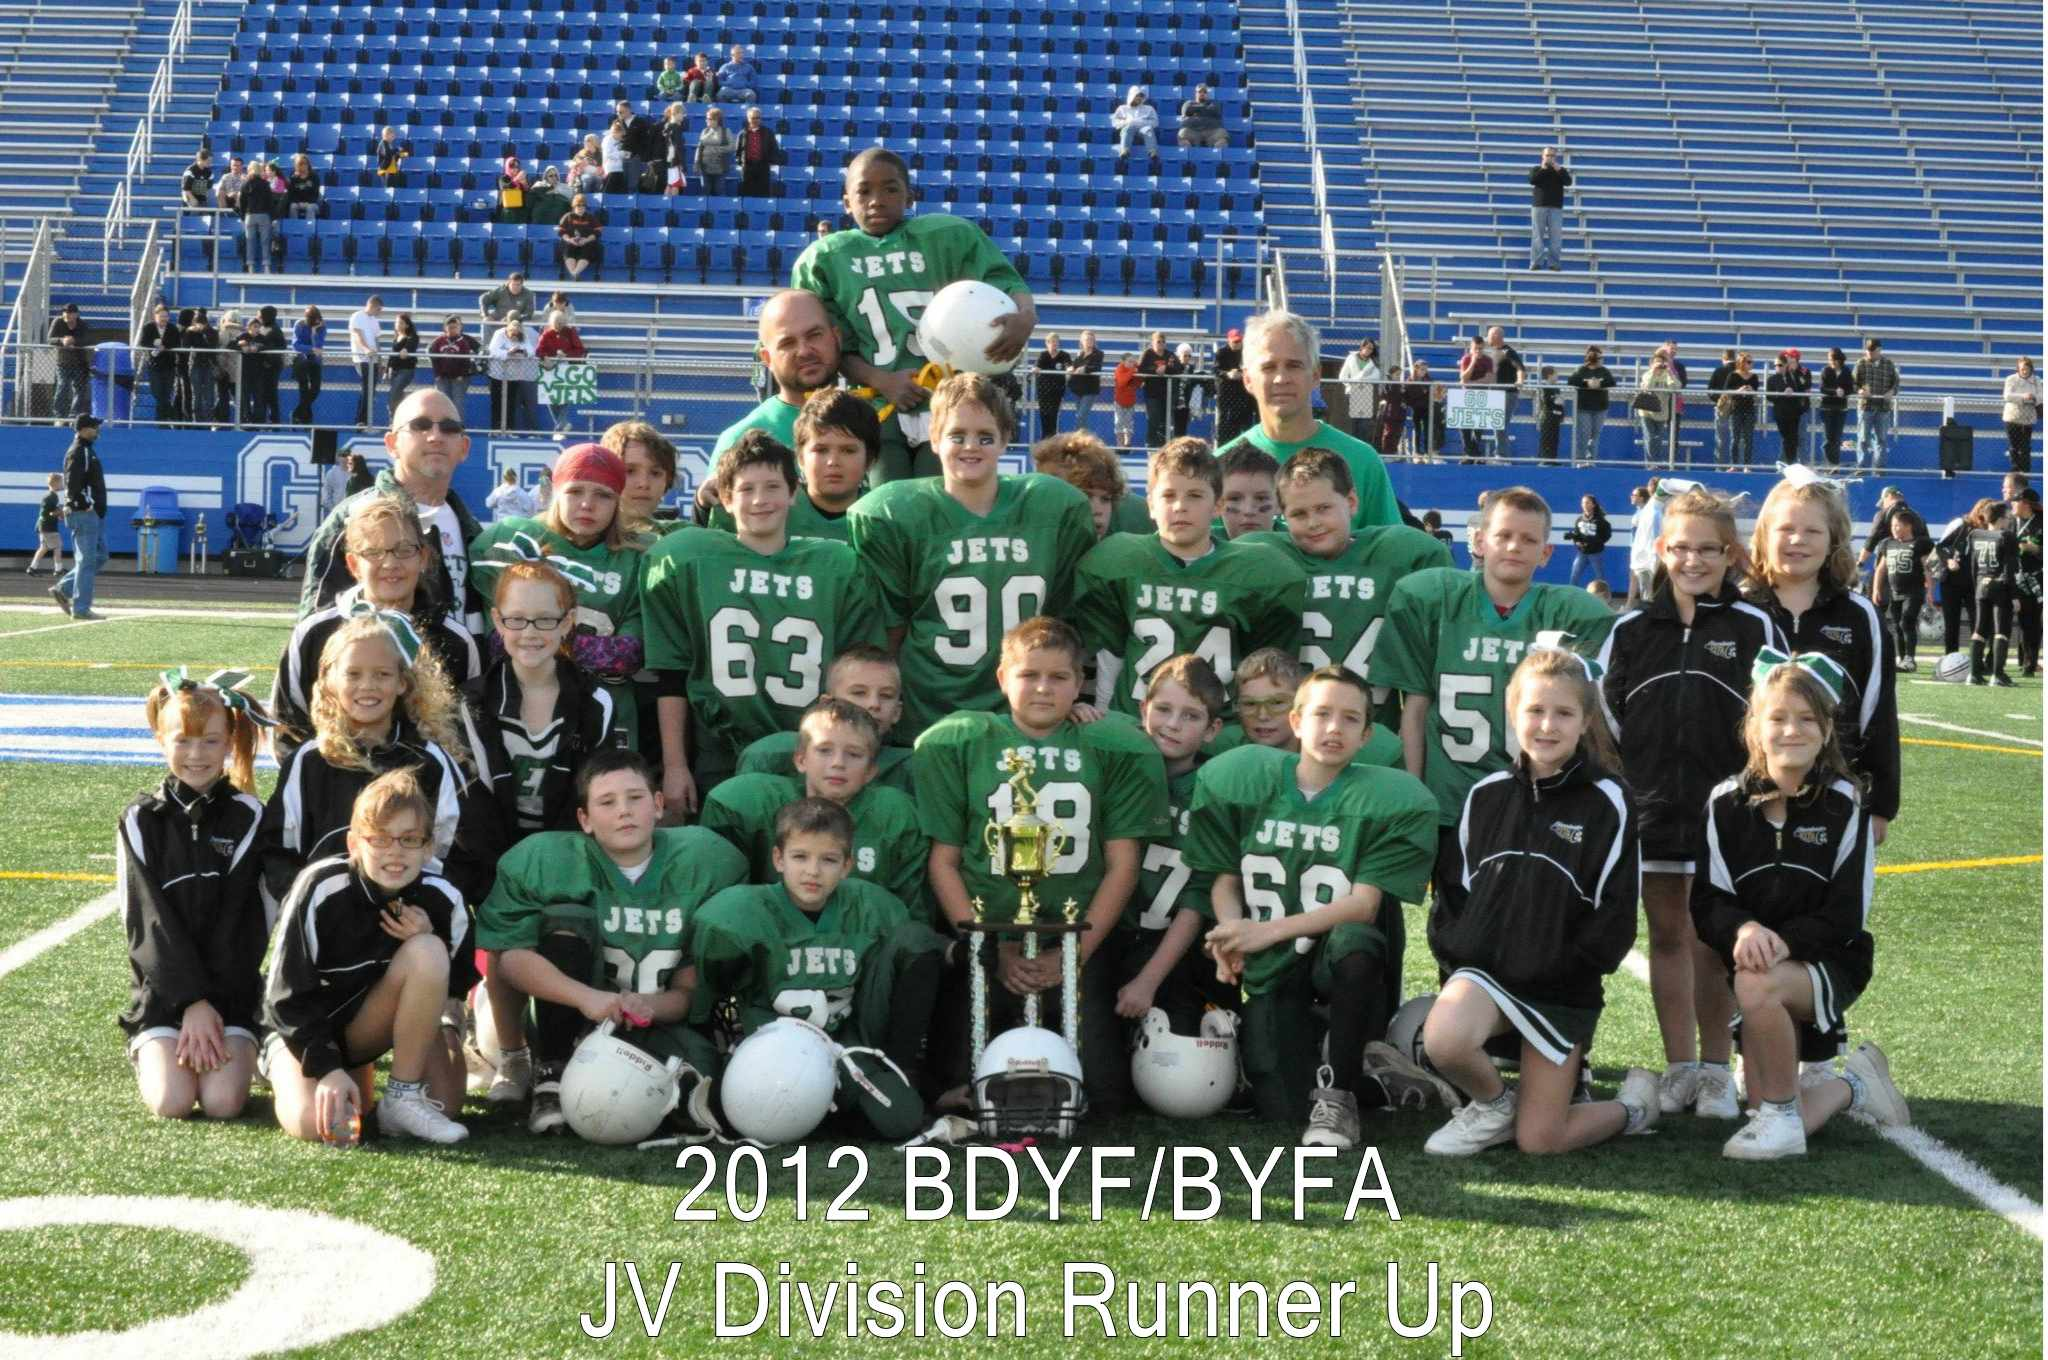 2012 Jets JV Runner Up